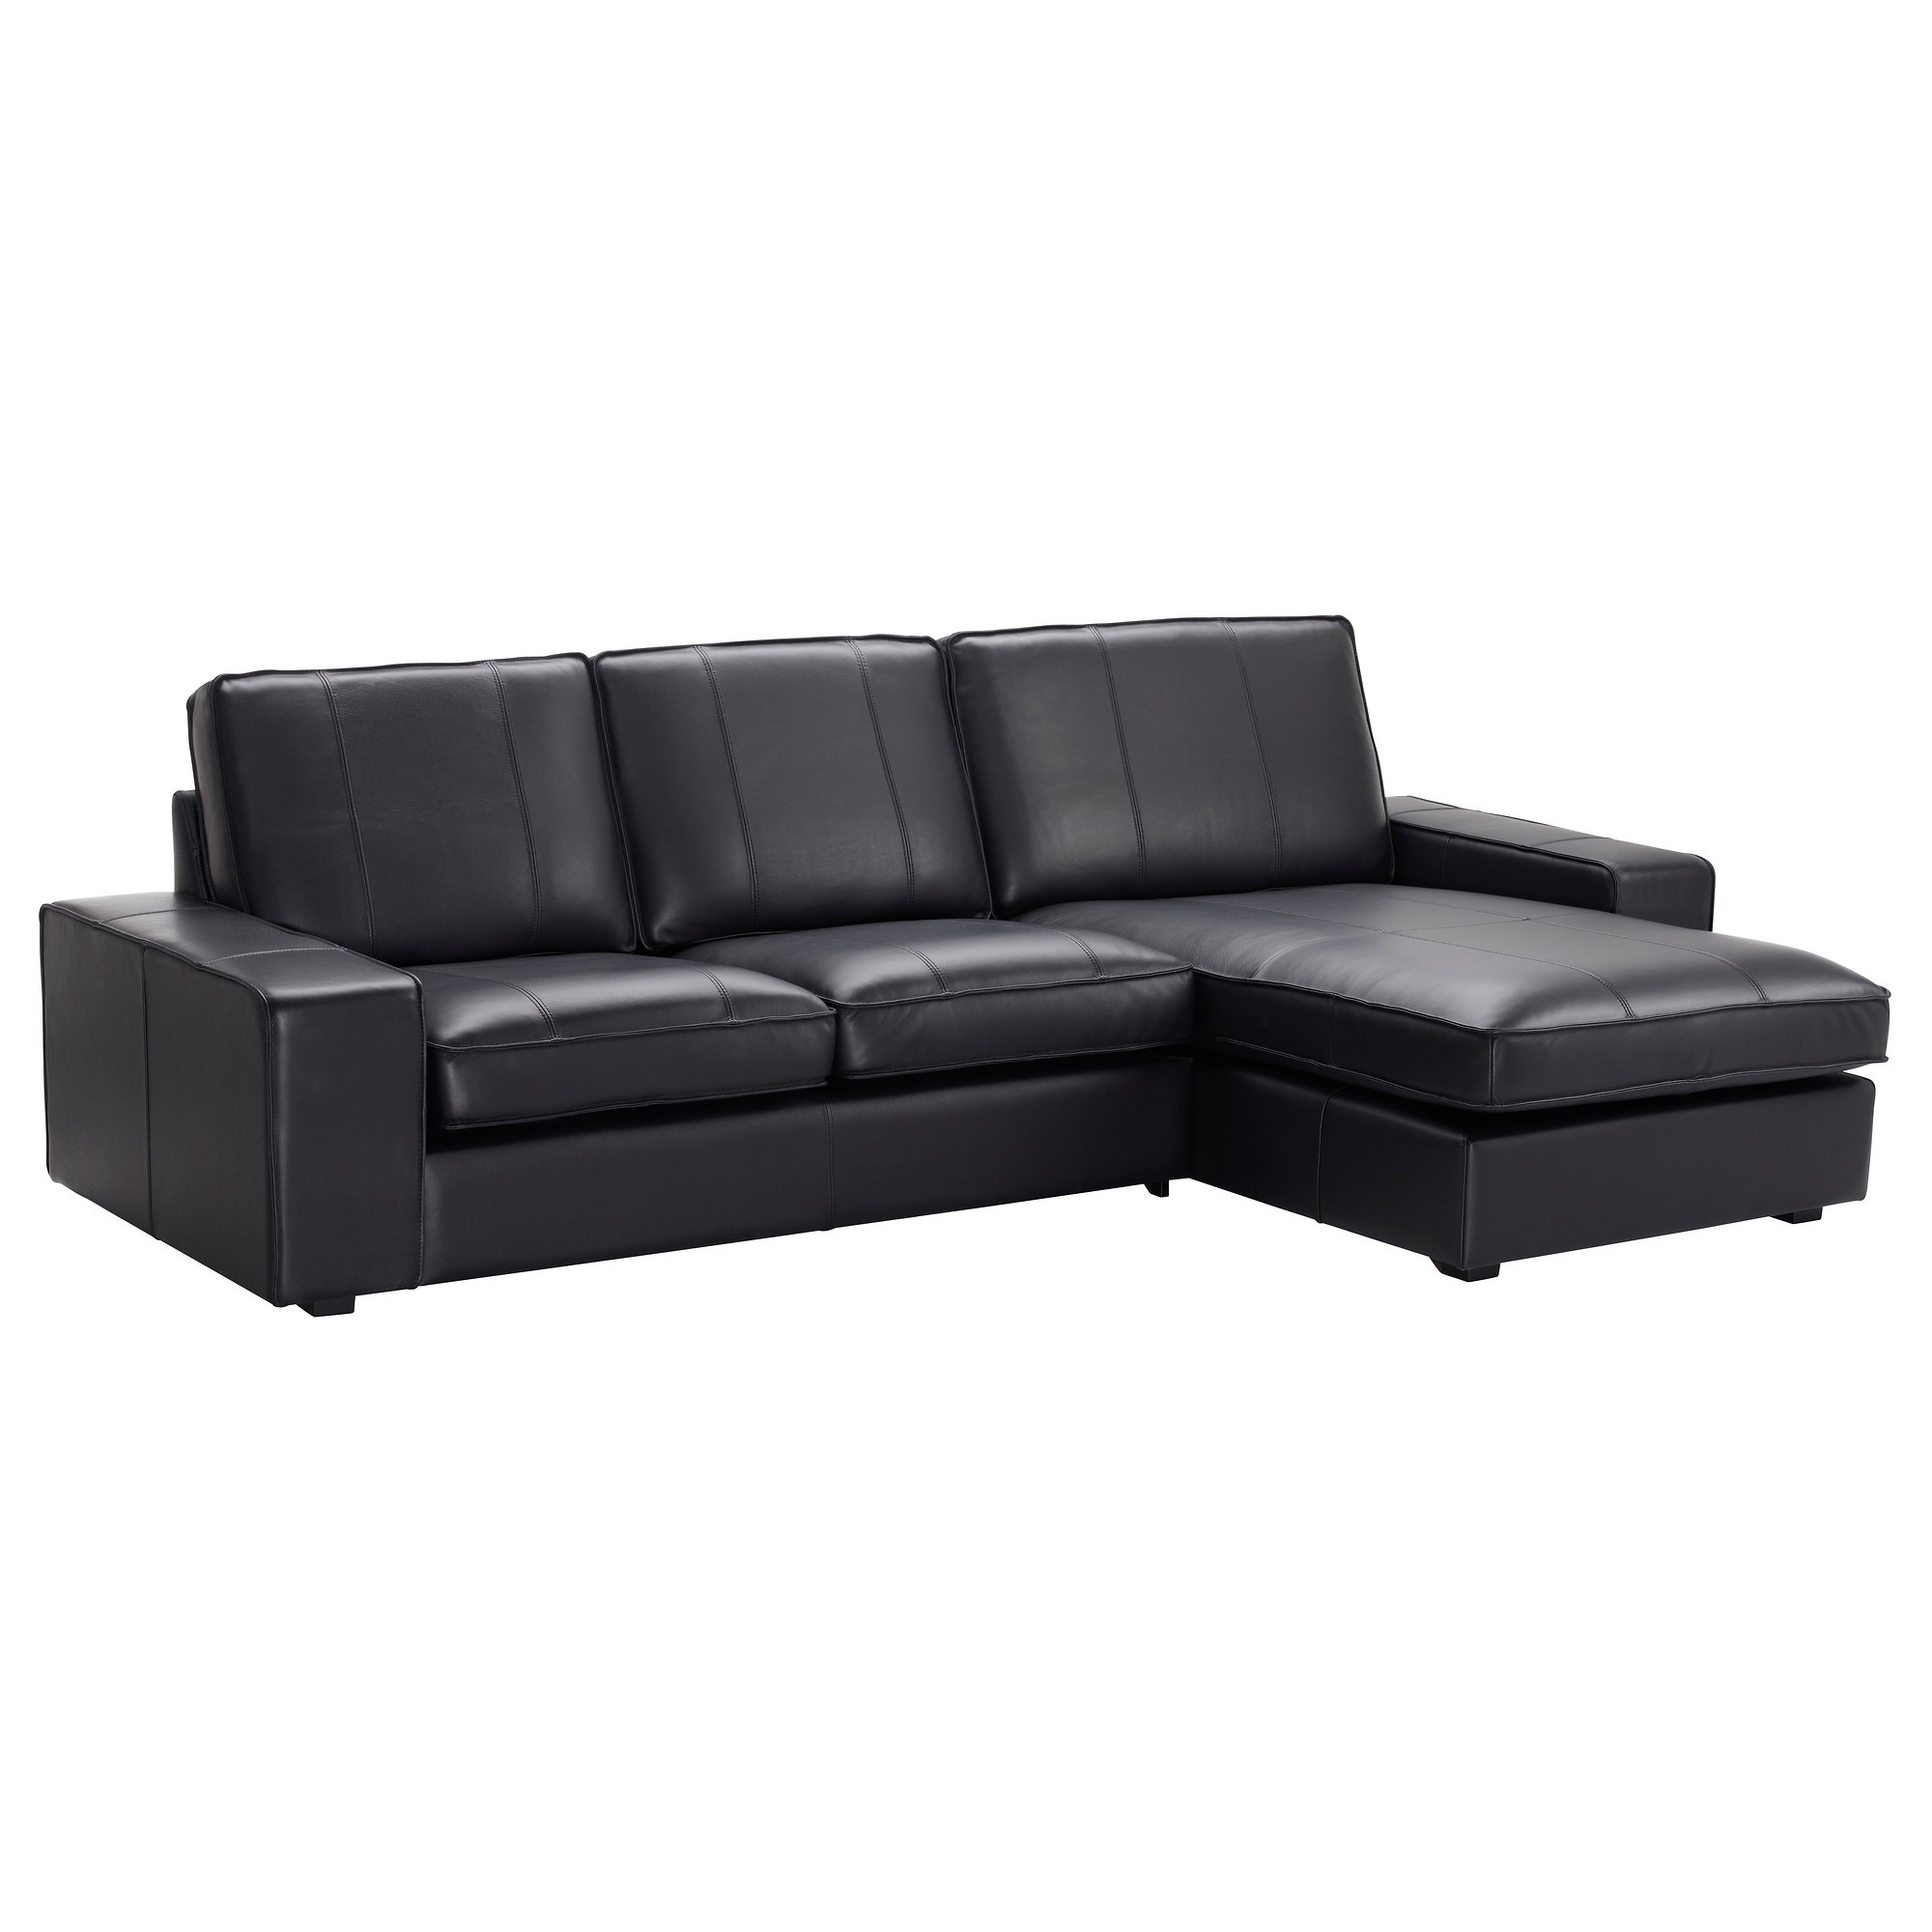 Canape cuir ikea 2 places canap id es de d coration for Canape 2 places convertible ikea